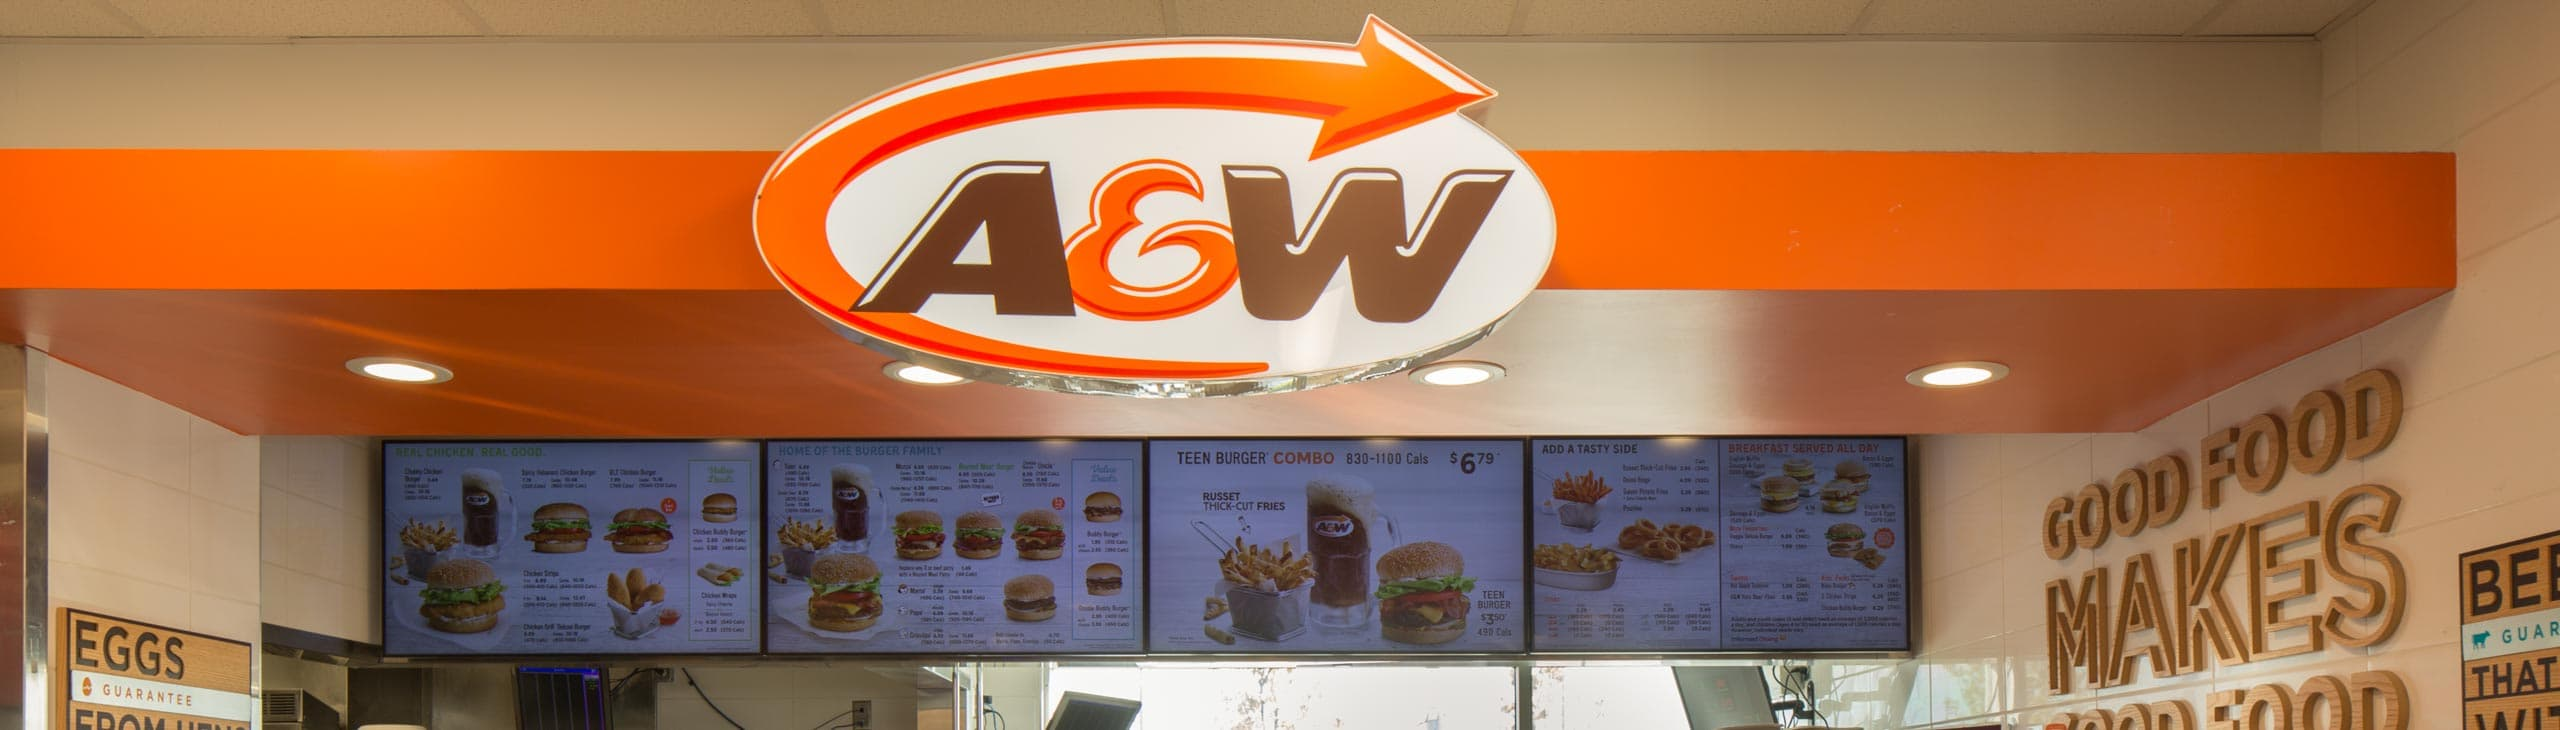 The counter and menu at an A&W location